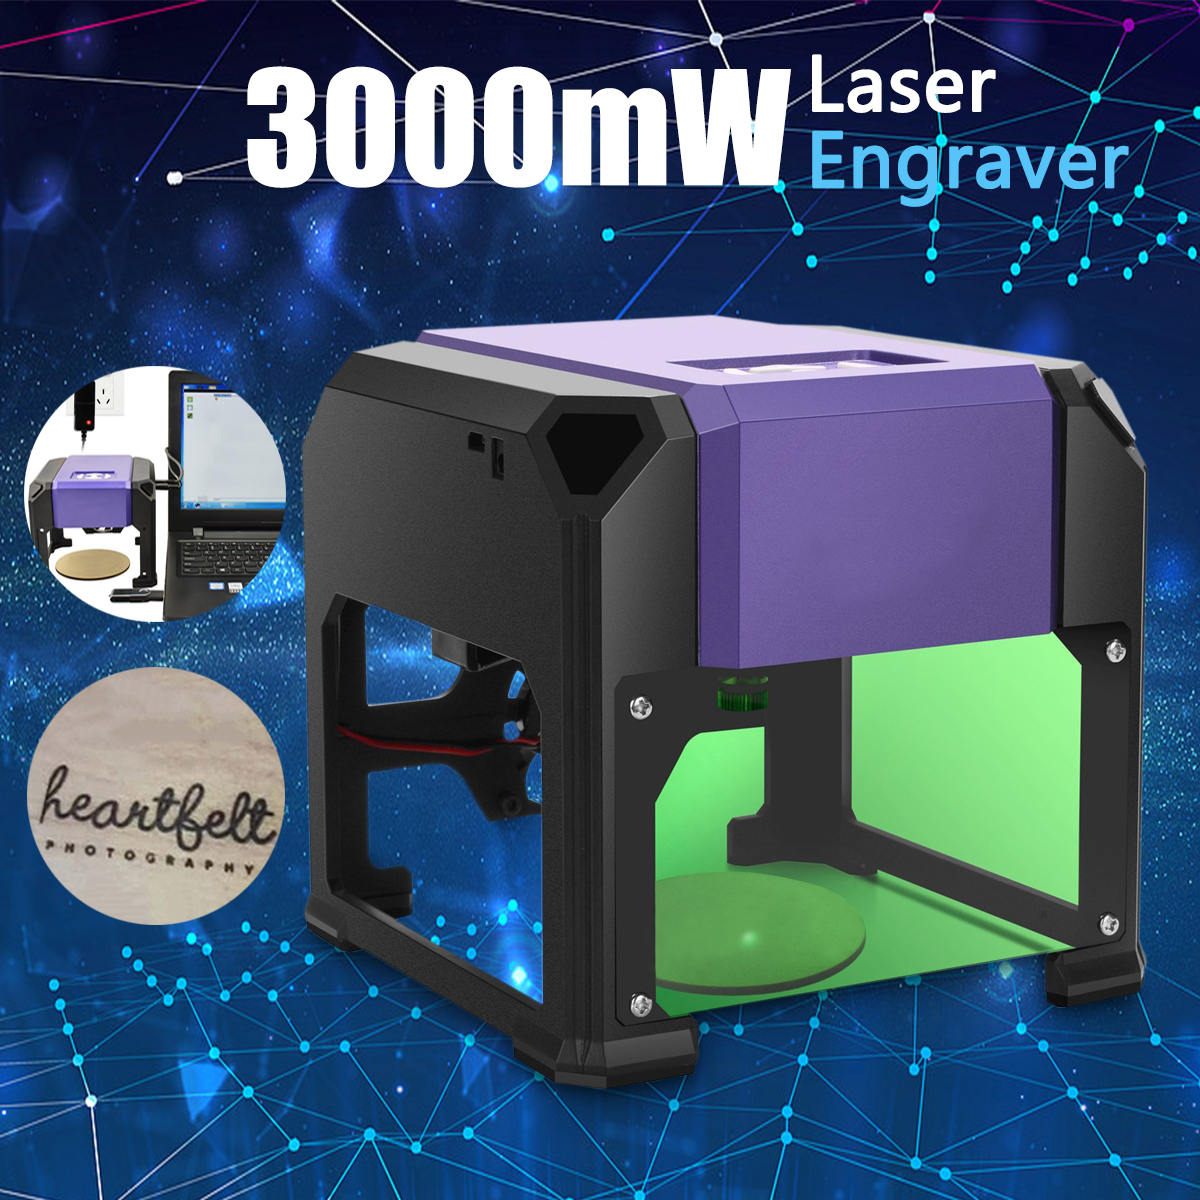 все цены на Desktop Laser Engraver Machine 3000mW USB DIY Logo Mark Printer Cutter CNC Laser Carving Machine 80x80mm Engraving Range онлайн